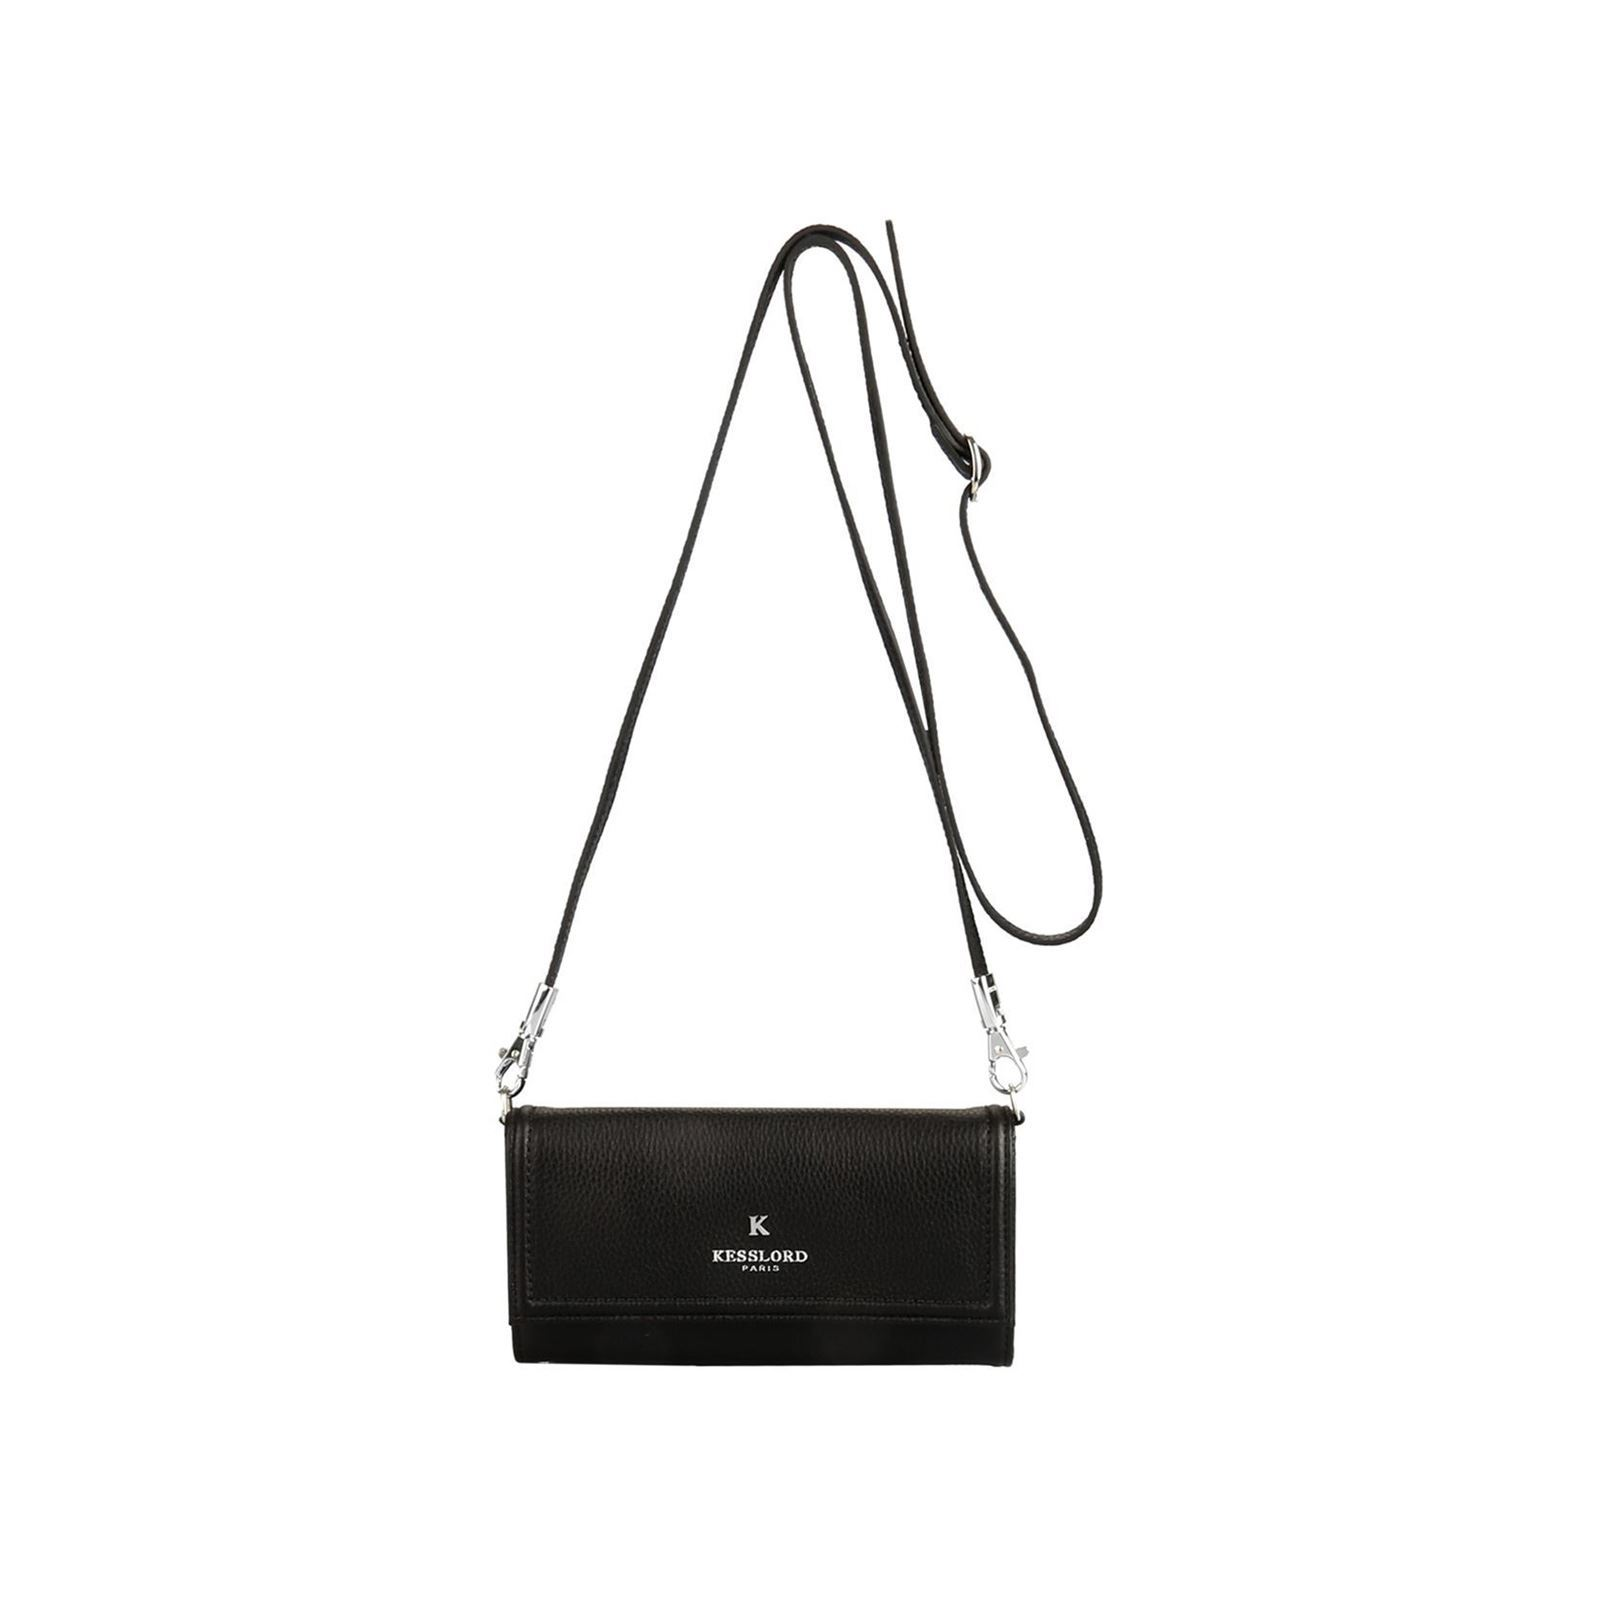 8f79f2ce9b Kesslord Molly country - Sac à main en cuir - noir | BrandAlley